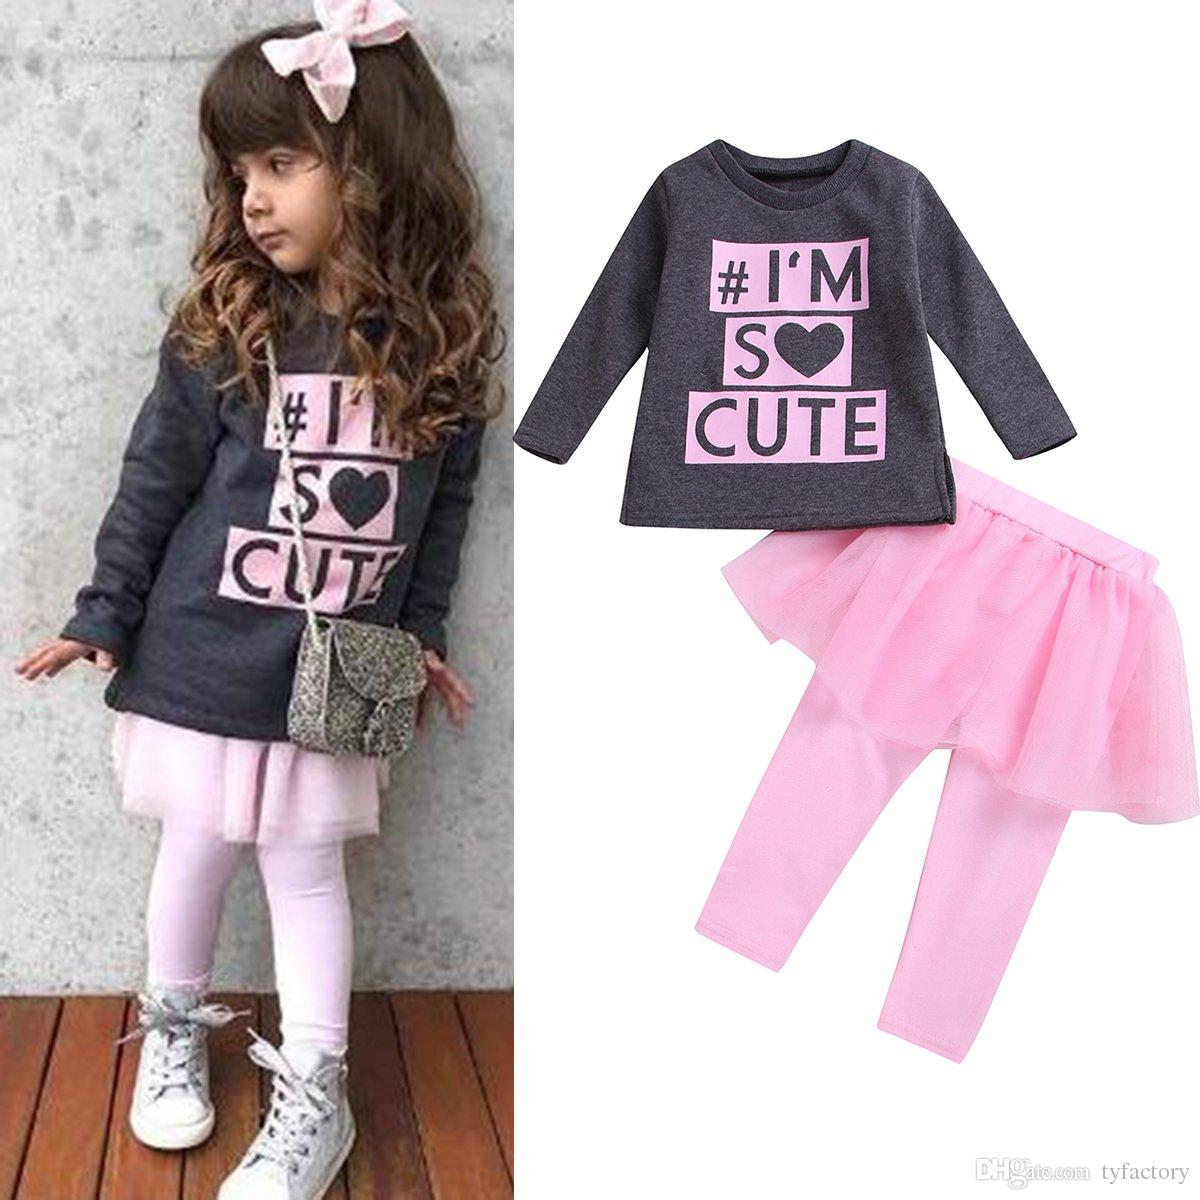 595cd1f3483e Kids Girls Tutu Dresses Pants Outfits Long Sleeves Black T-shirt Tops Pink  Pants Dress 2PCS set Clothing Letter Print I'm so cute 1-6Y